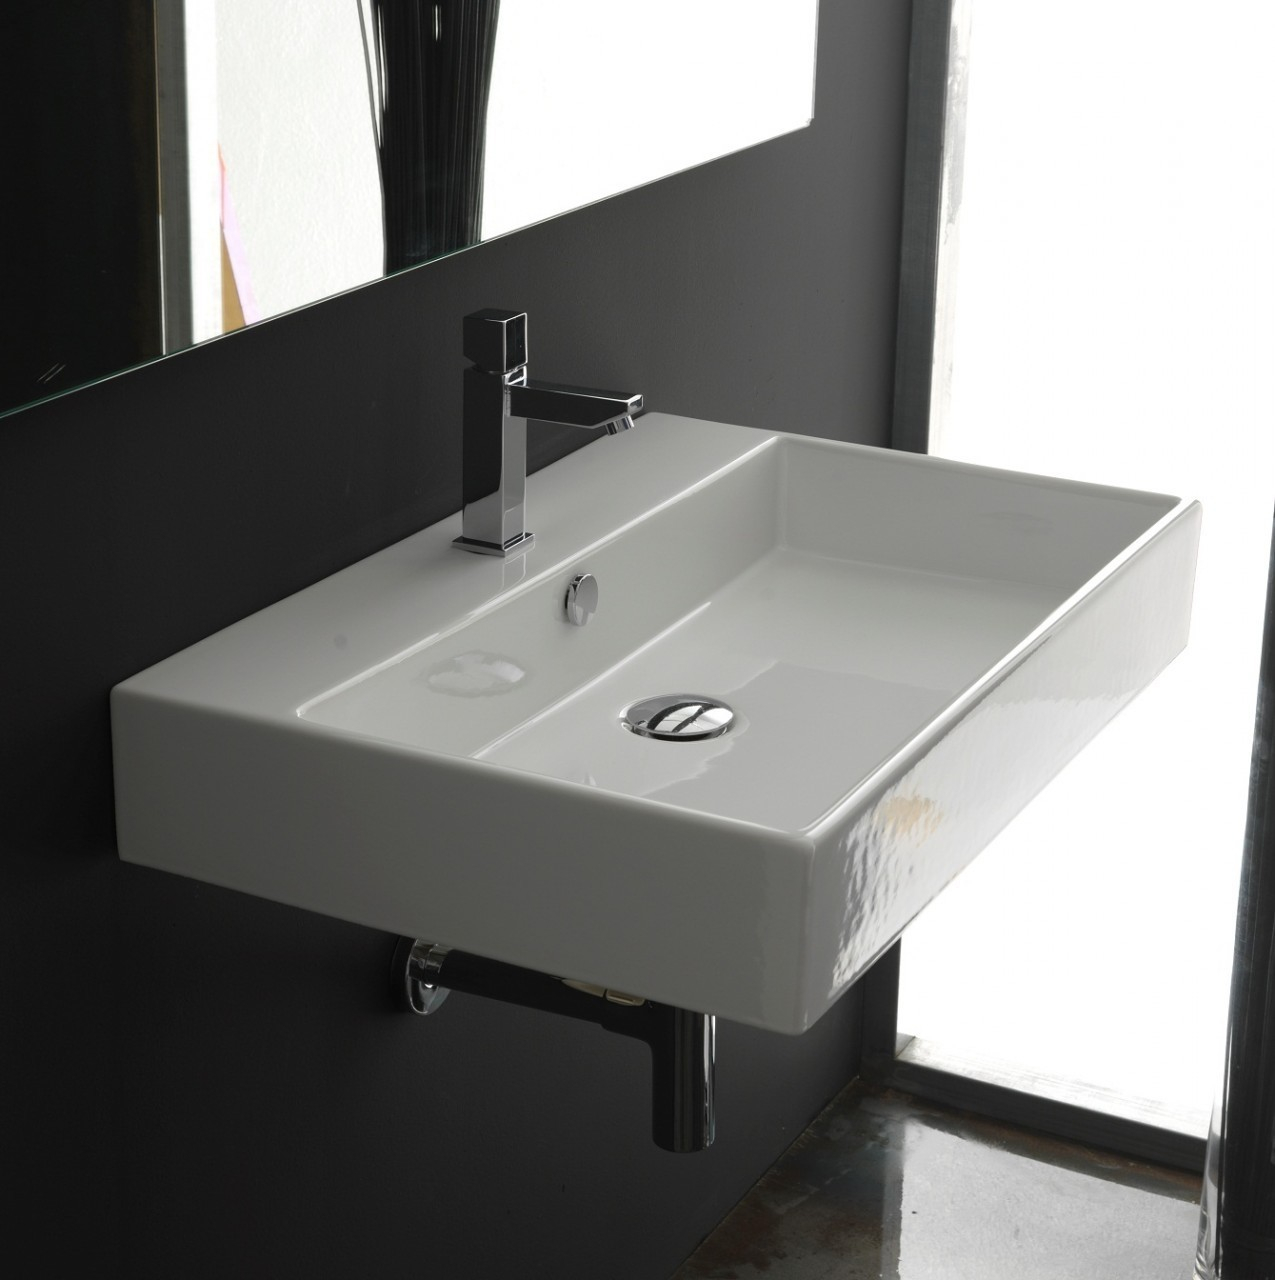 Glamorous Ada Compliant Bathroom Sinks | Modo Bath with Awesome Ada Compliant Bathroom Sink